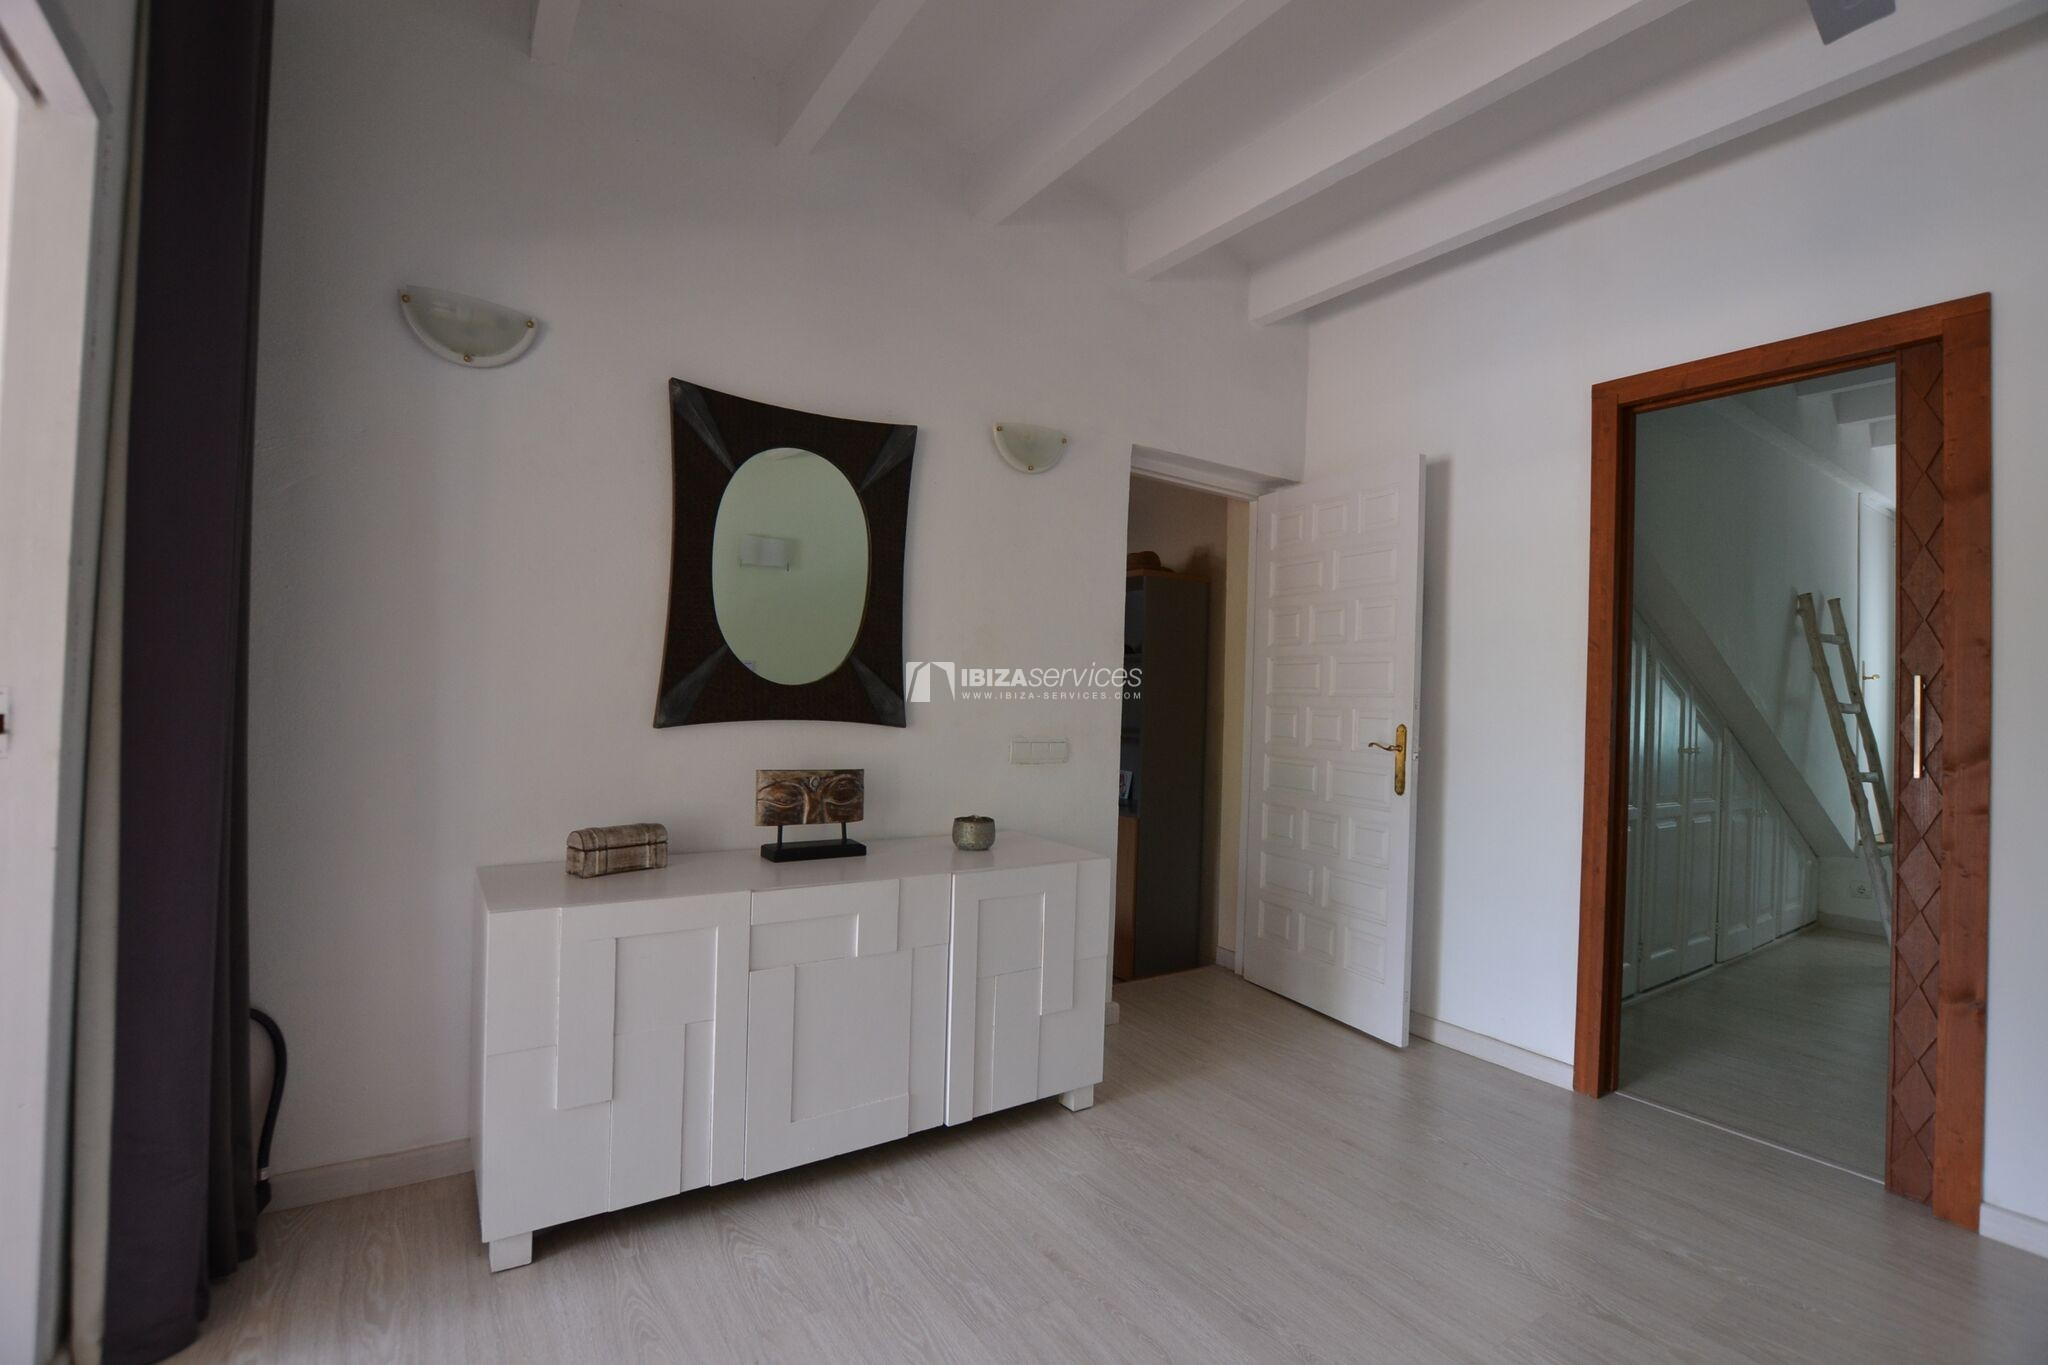 Charming house weekly rental San jordi perspectiva 11